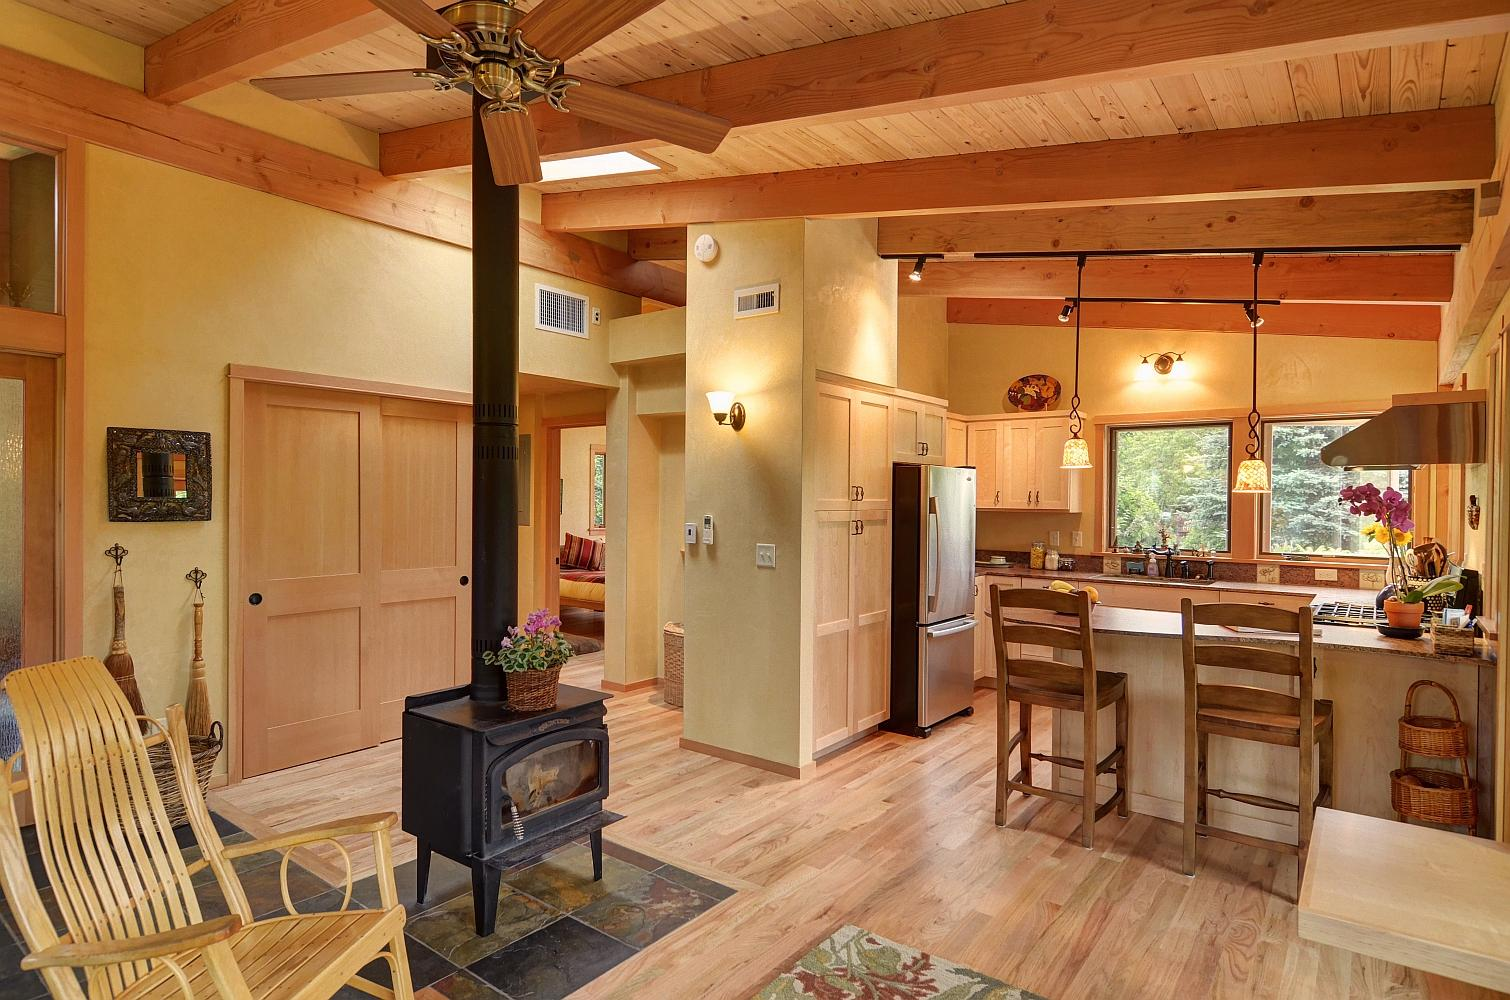 River Road House A Beautiful Timber Frame Dwelling Nir